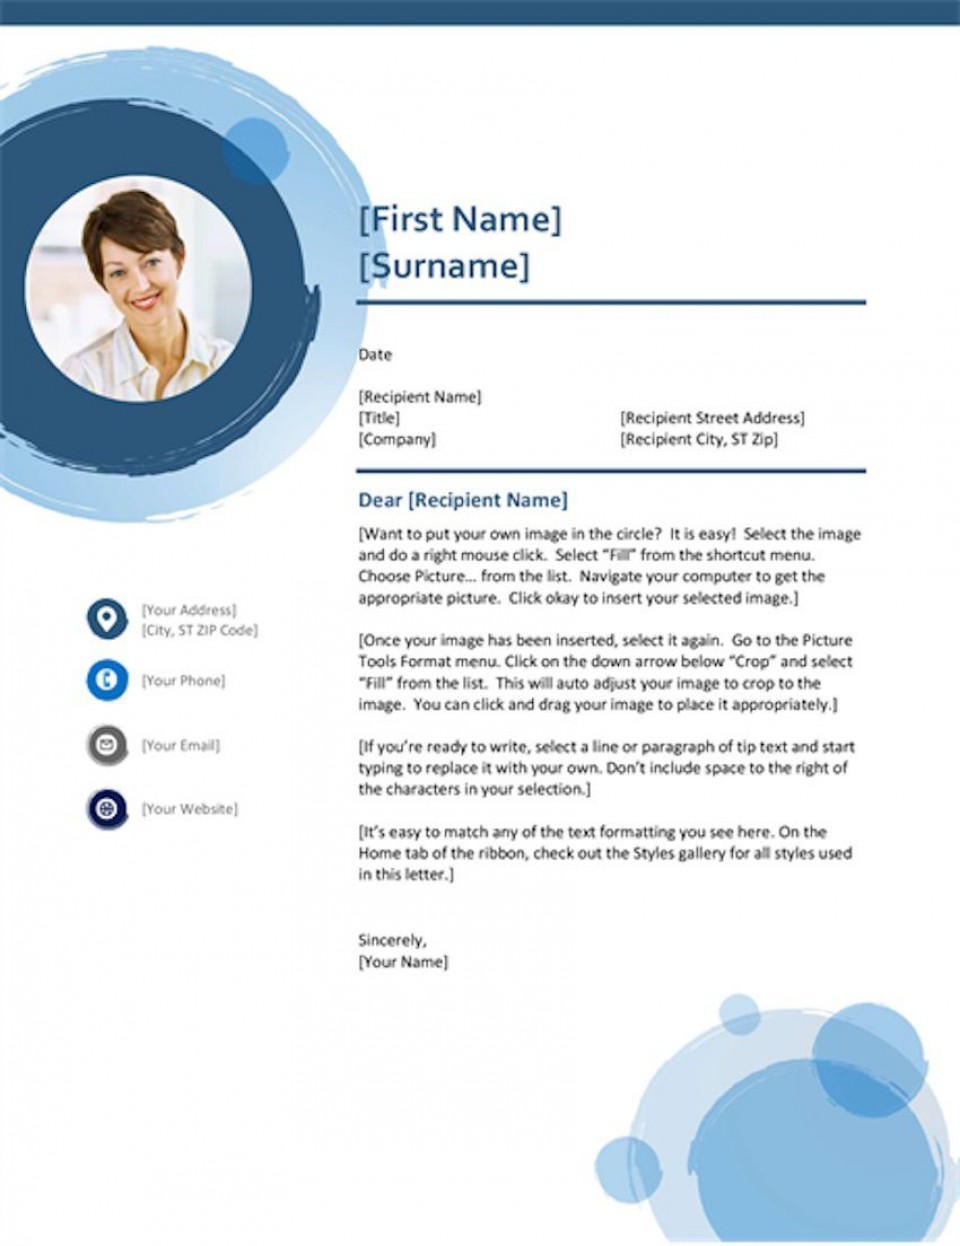 002 Shocking Cover Letter Template Microsoft Word Image  2007 Fax960